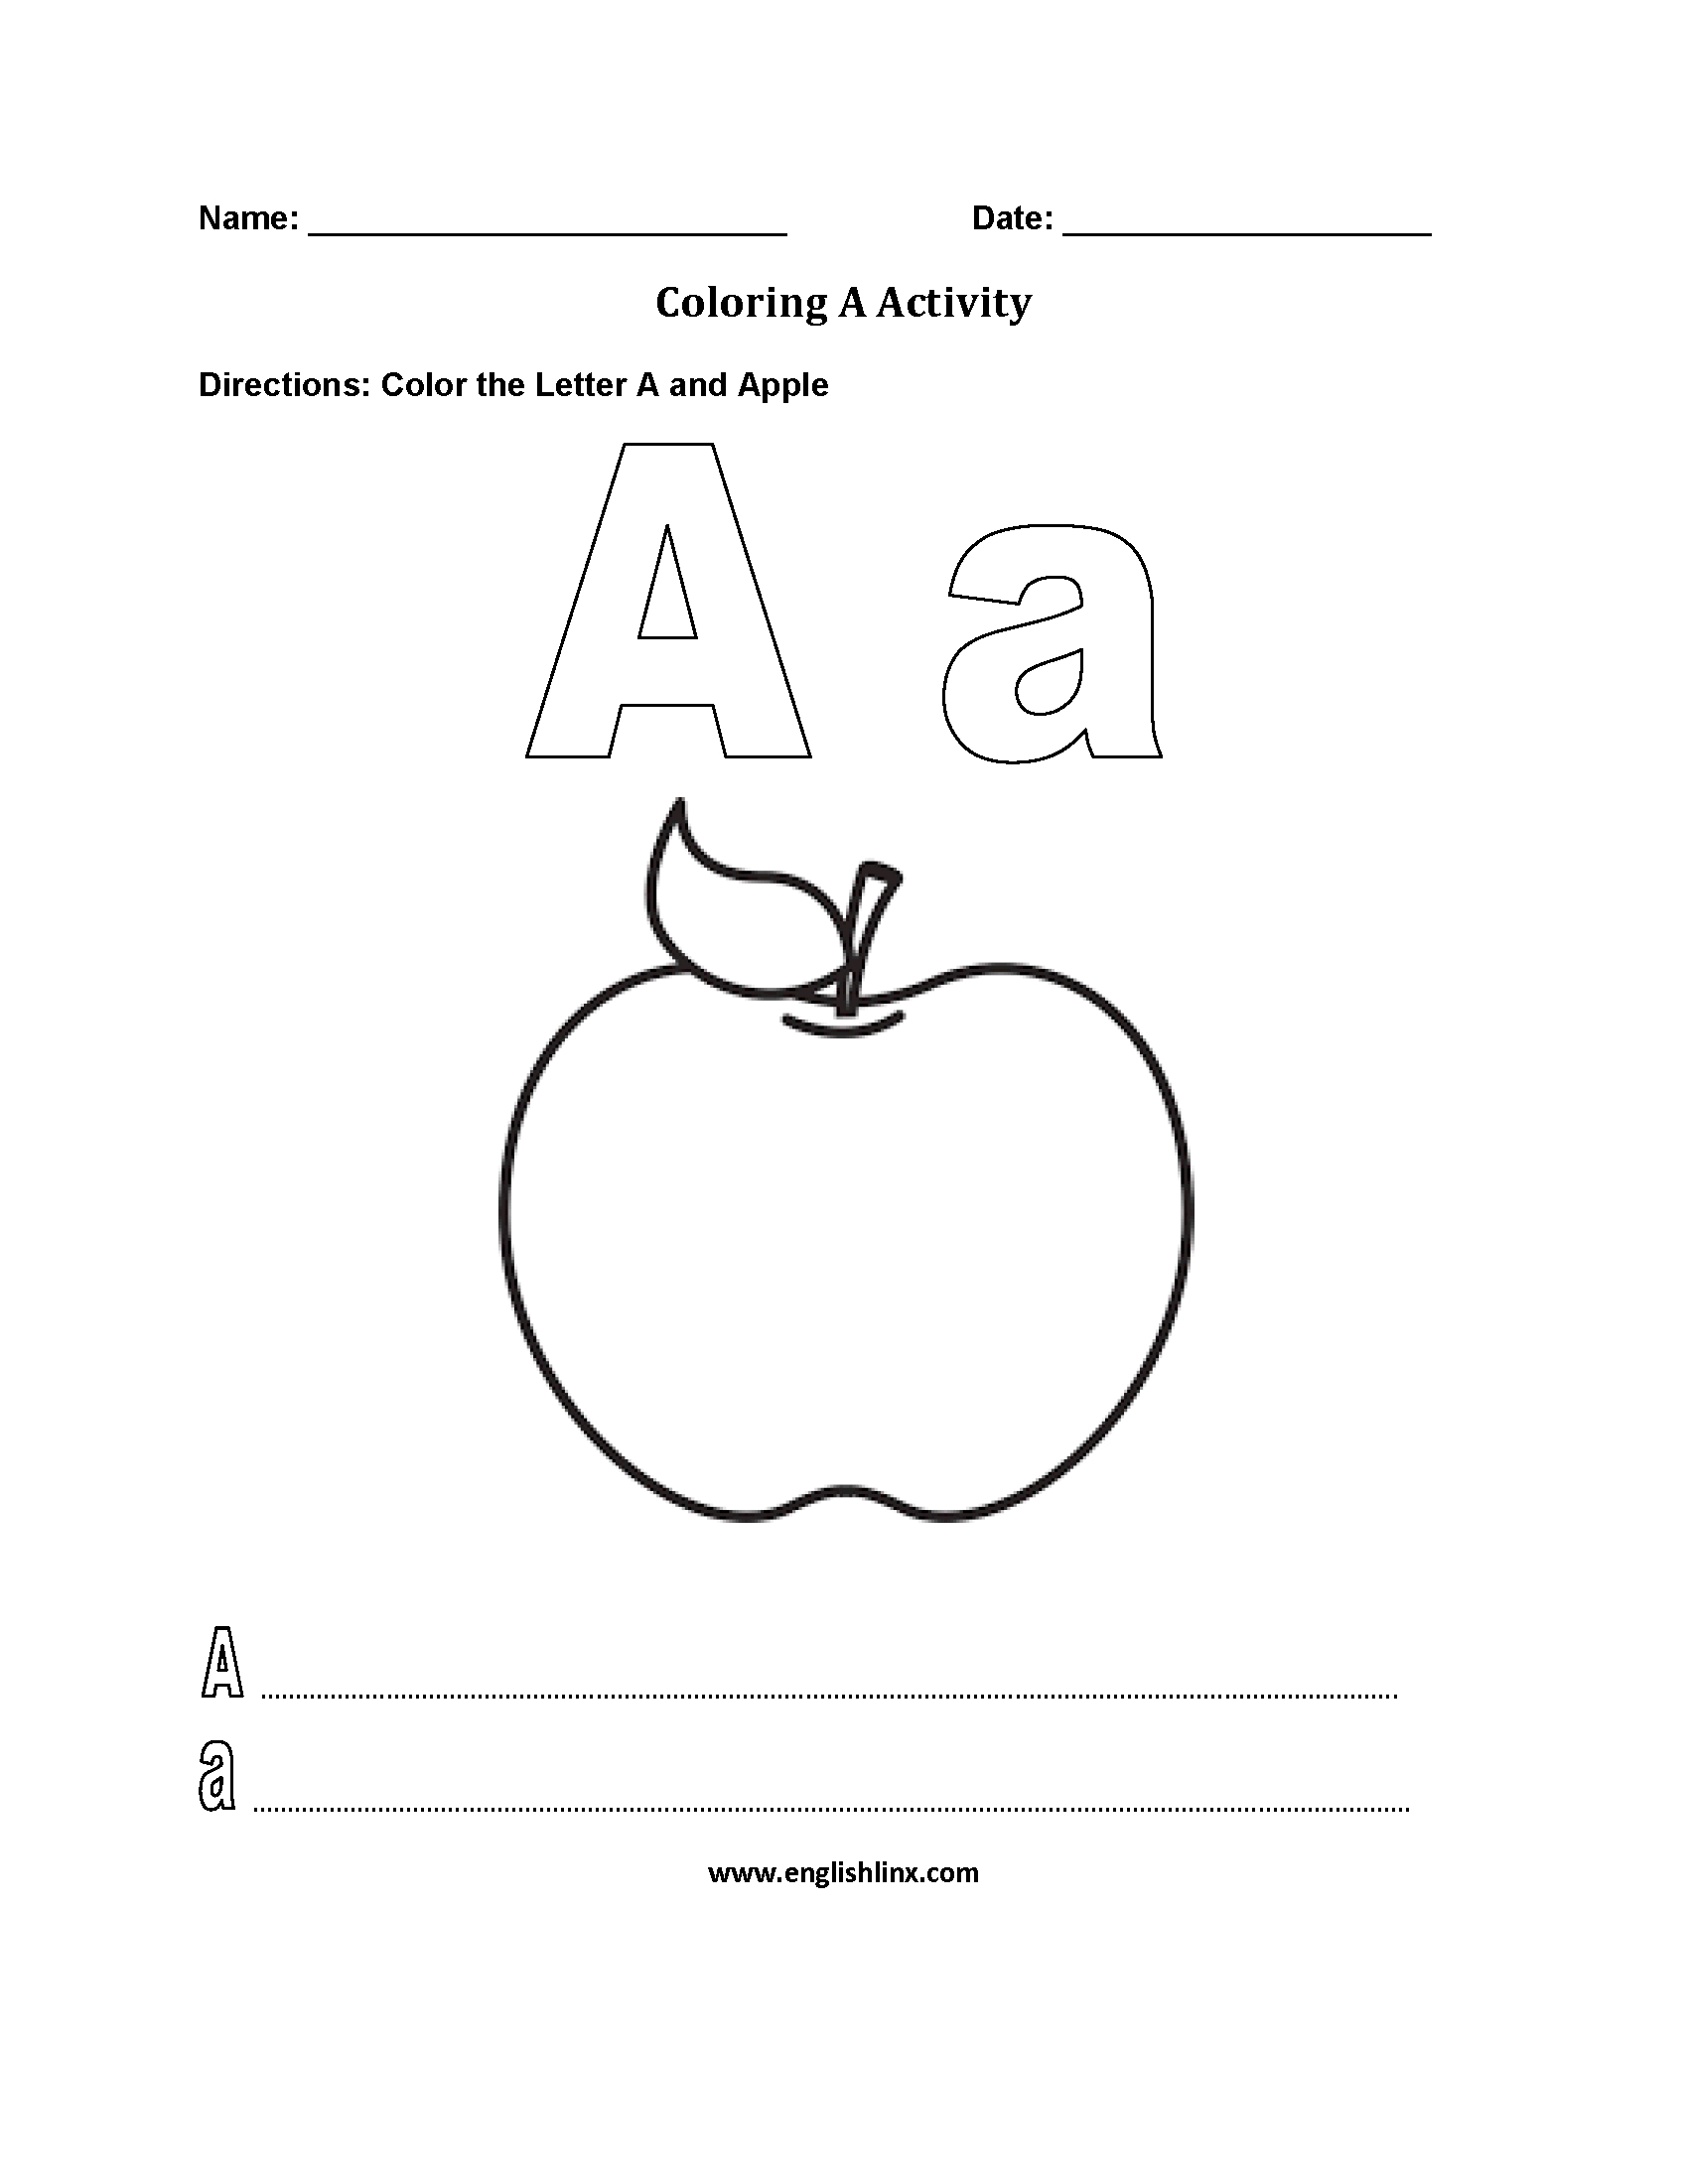 Coloring ~ Coloring Worksheet Alphabet Worksheets Pages pertaining to Alphabet Colouring Worksheets